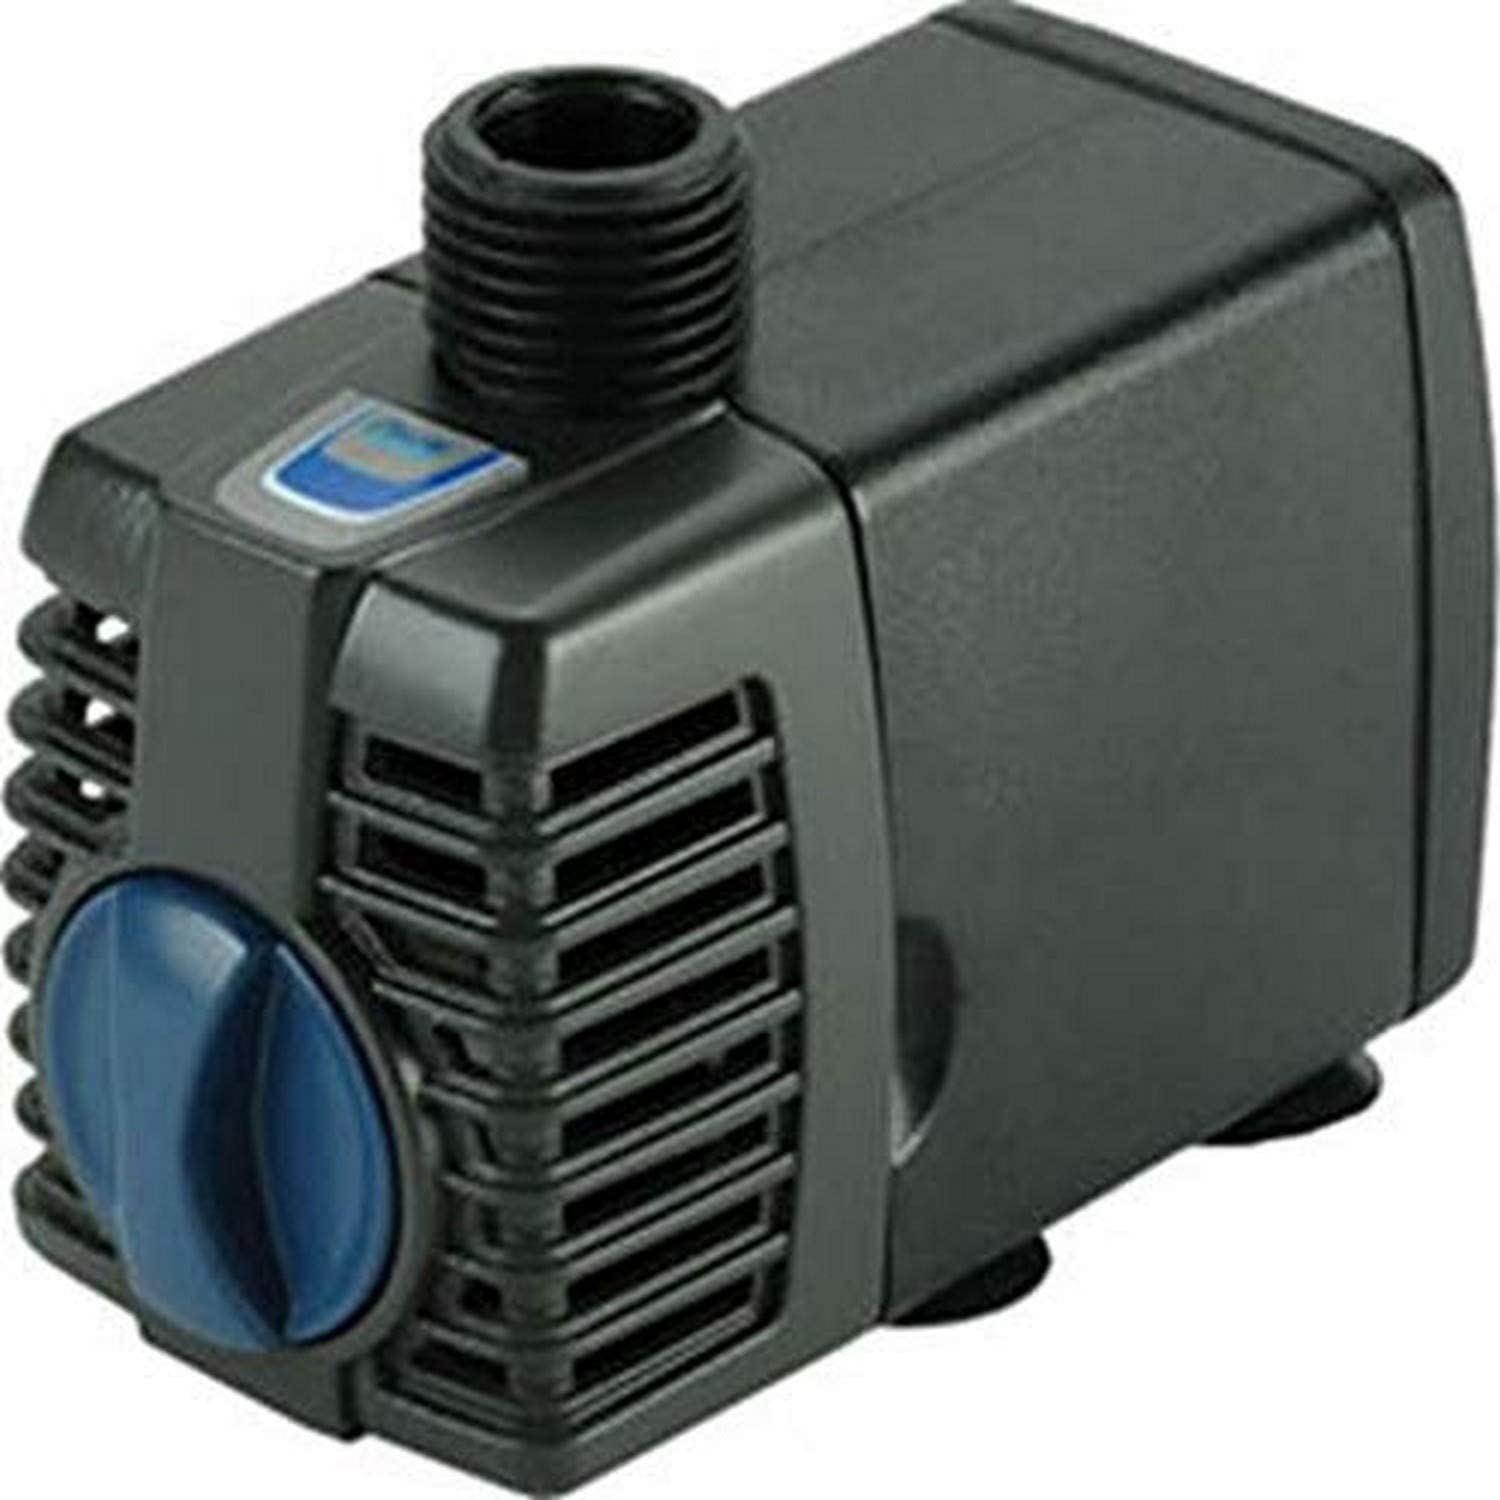 OASE 45414 Fountain Pump, Black